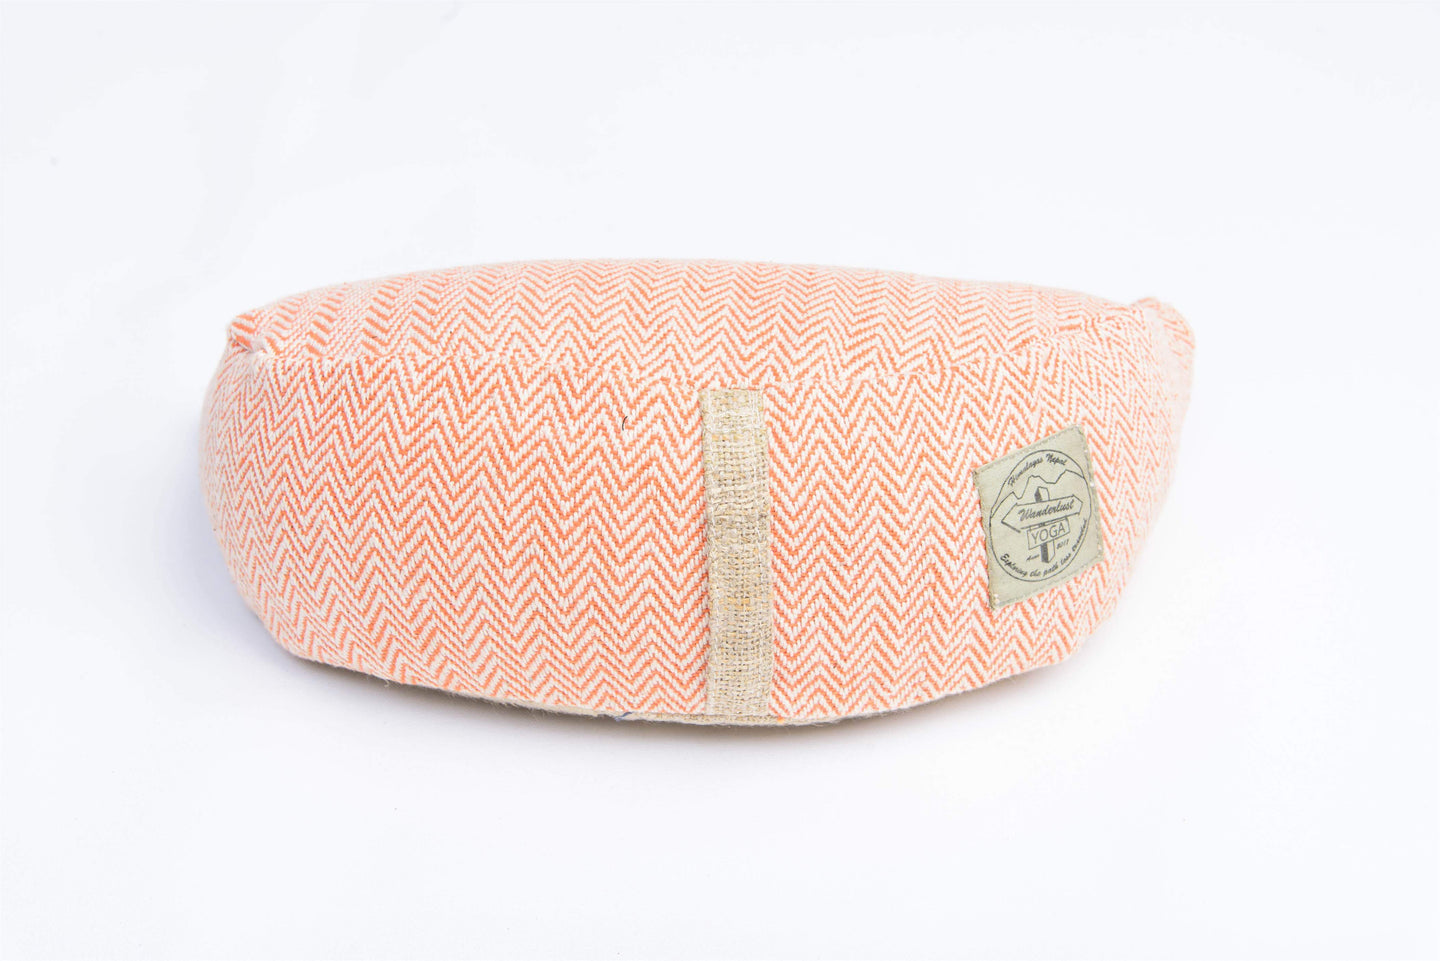 Meditation Pillow Lunar - orange